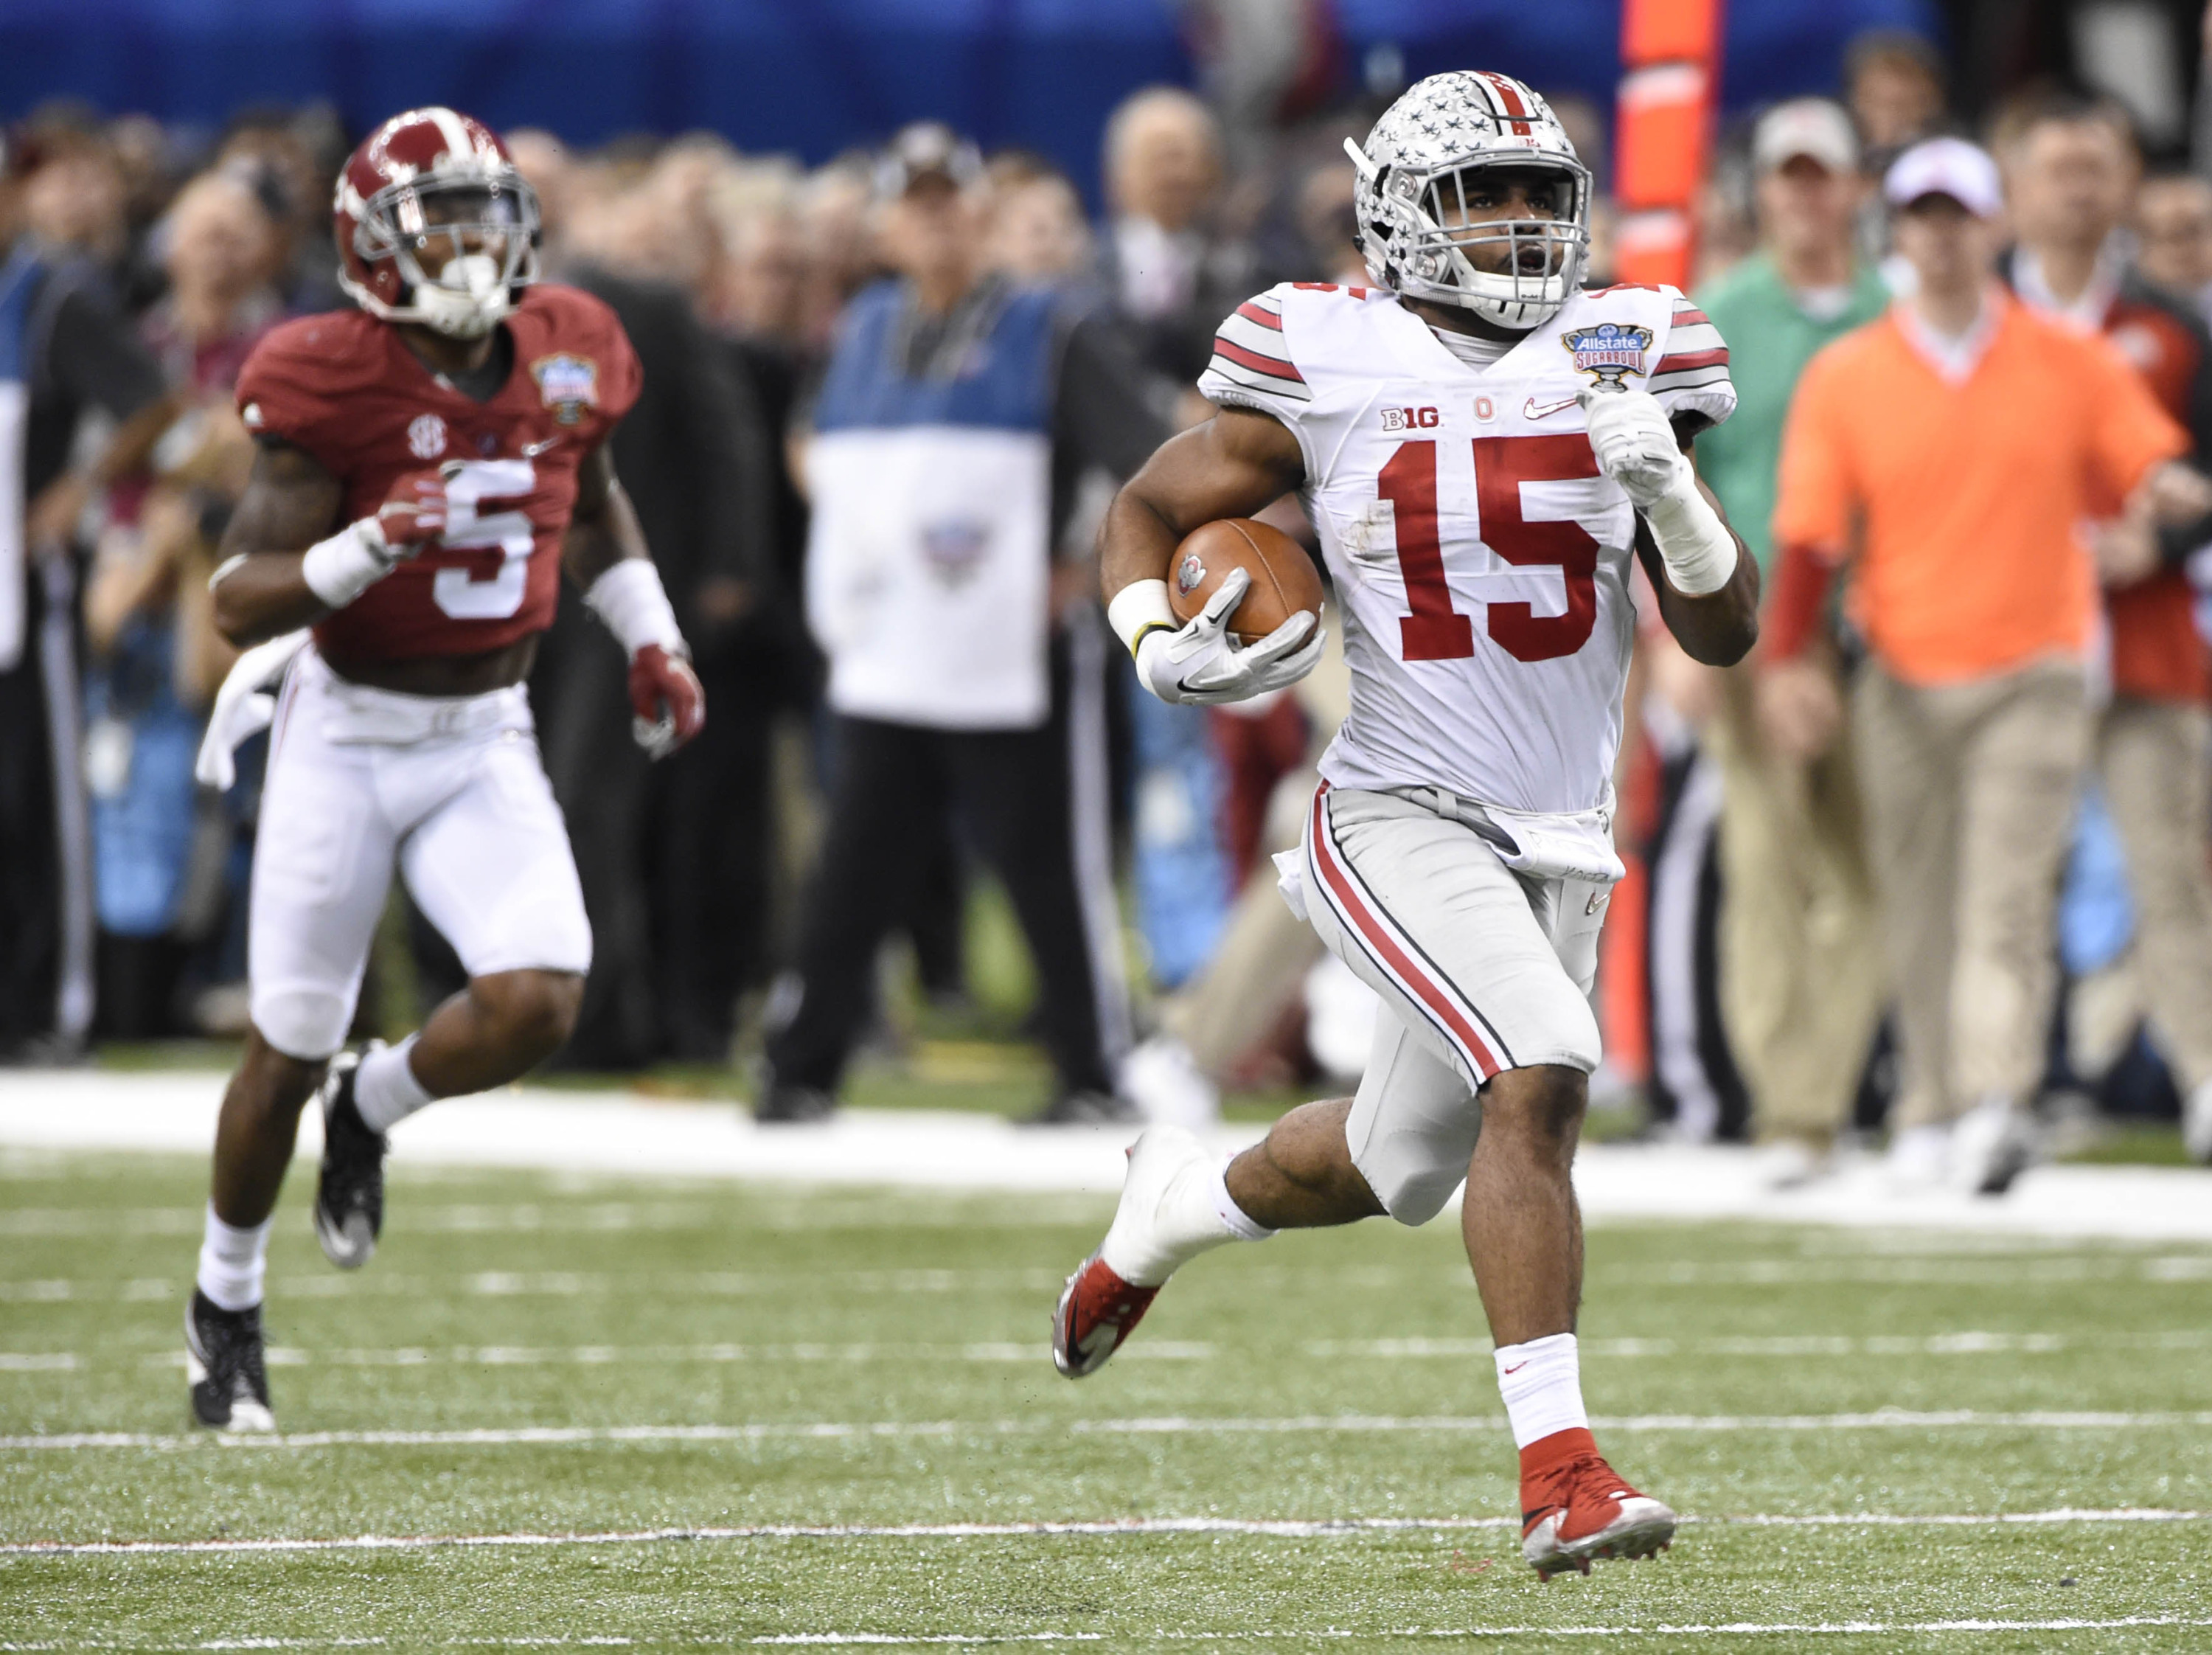 Ohio State Vs Alabama Photo Gallery Ohio State Buckeyes